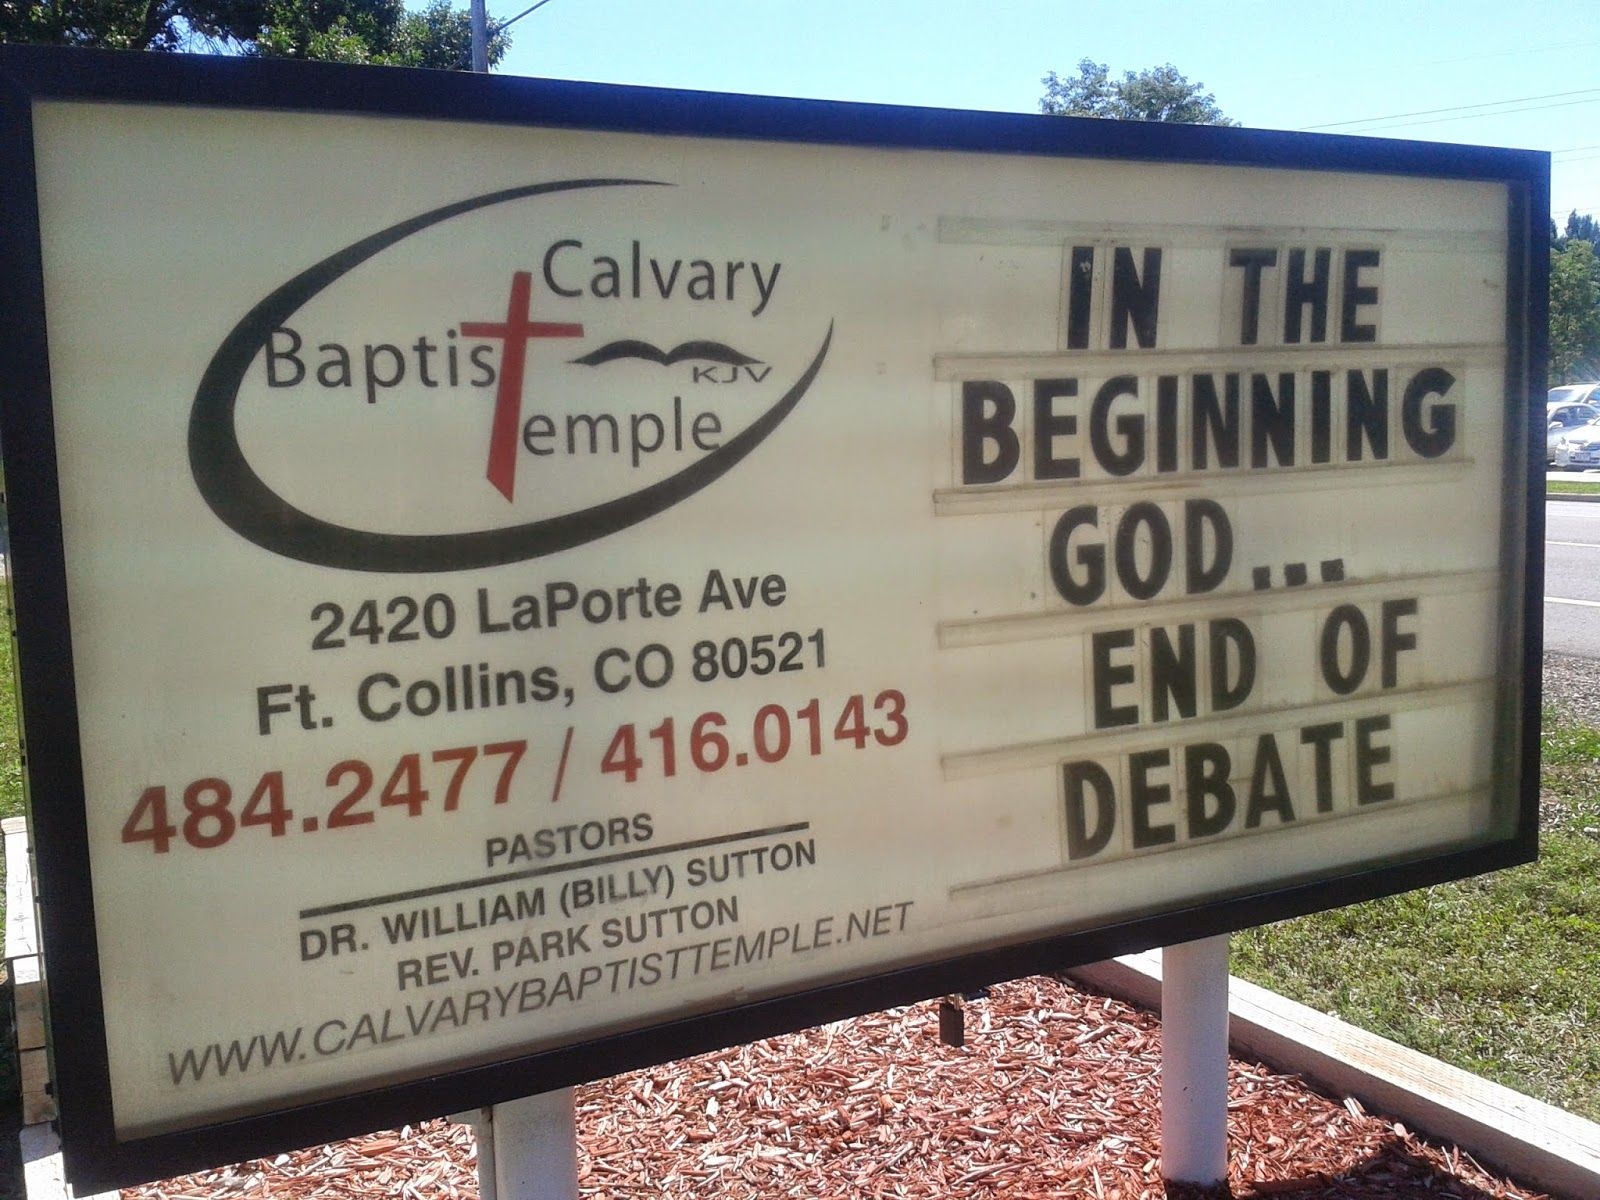 Church Sign Quotes Mesmerizing In The Beginning Goddebate Over  Church Sign Board Message